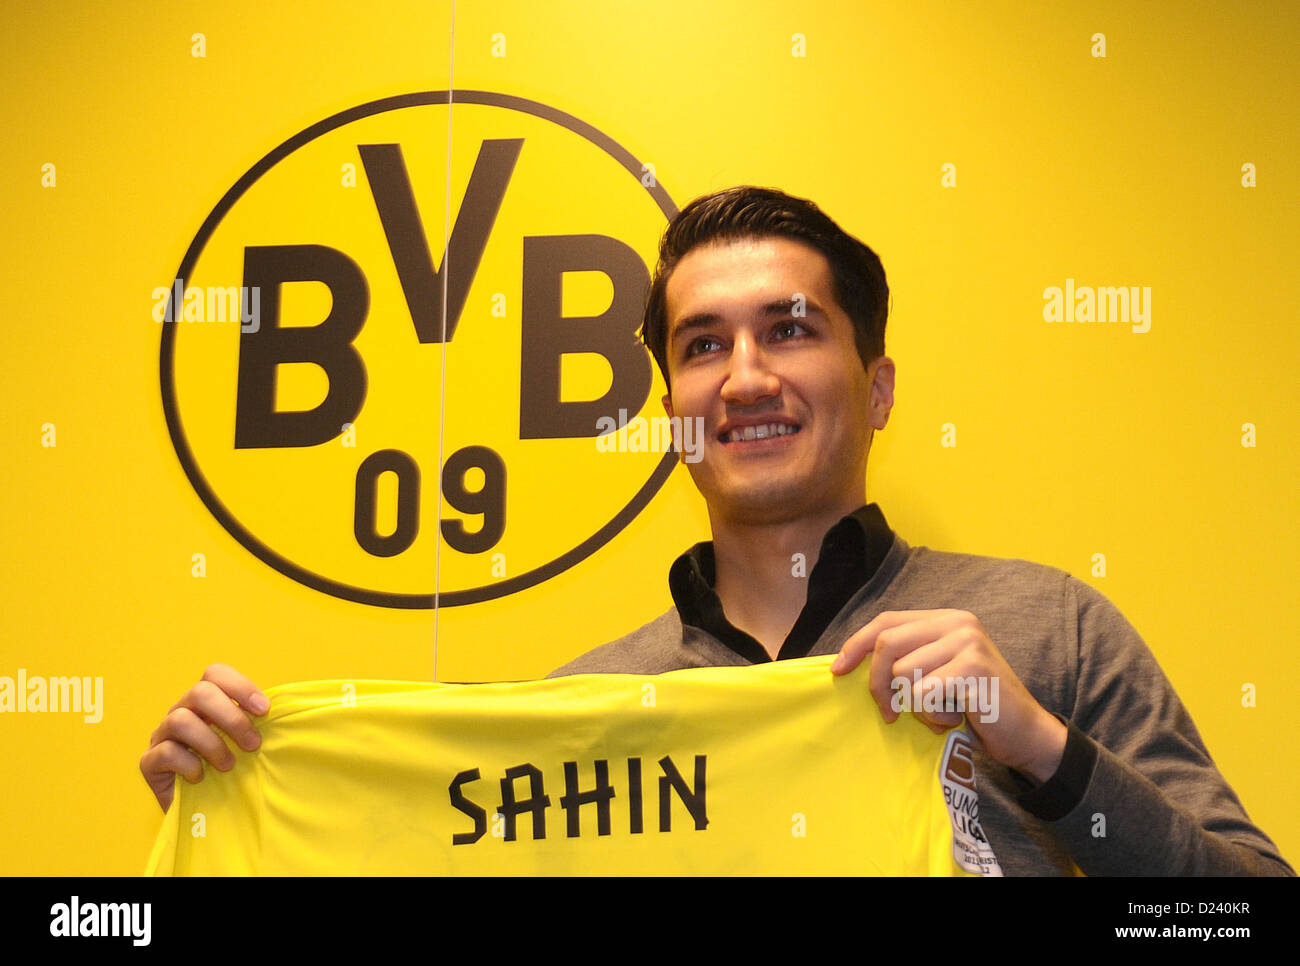 Nuri Sahin is presented as the new acquisition of Bundesliga soccer club Borussia Dortmnd (BVB) and holds up his - Stock Image